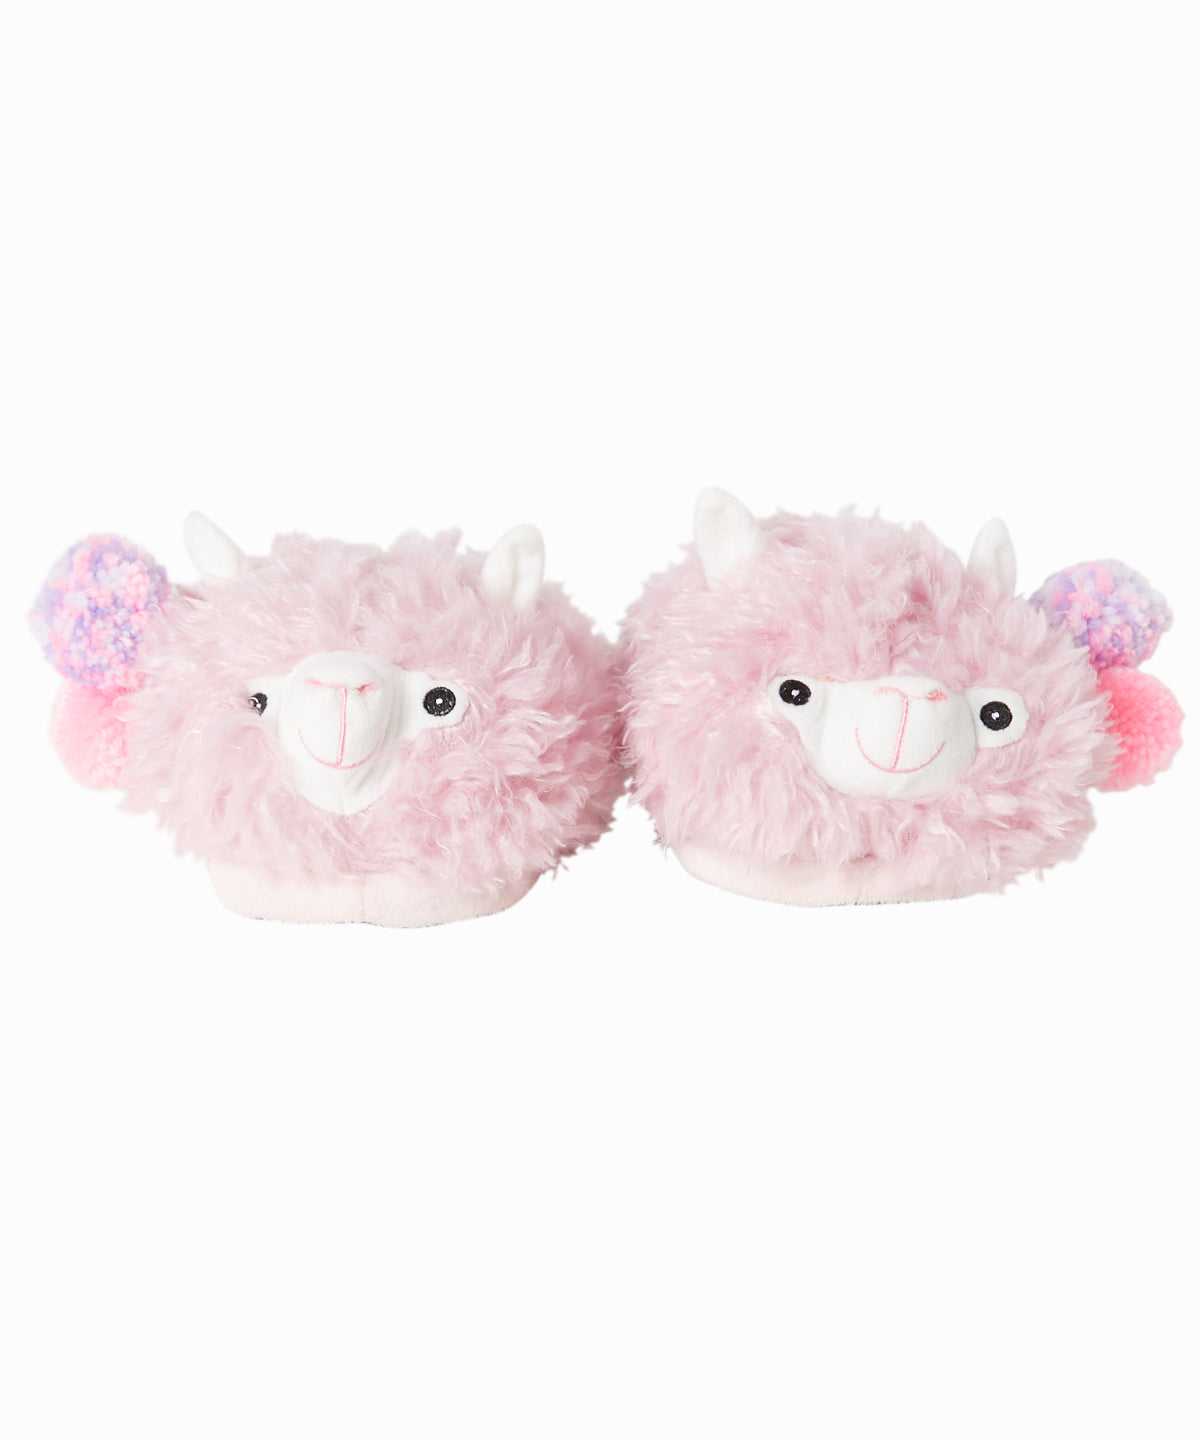 Cupcakes Cartwheels Lovely Llama Slippers